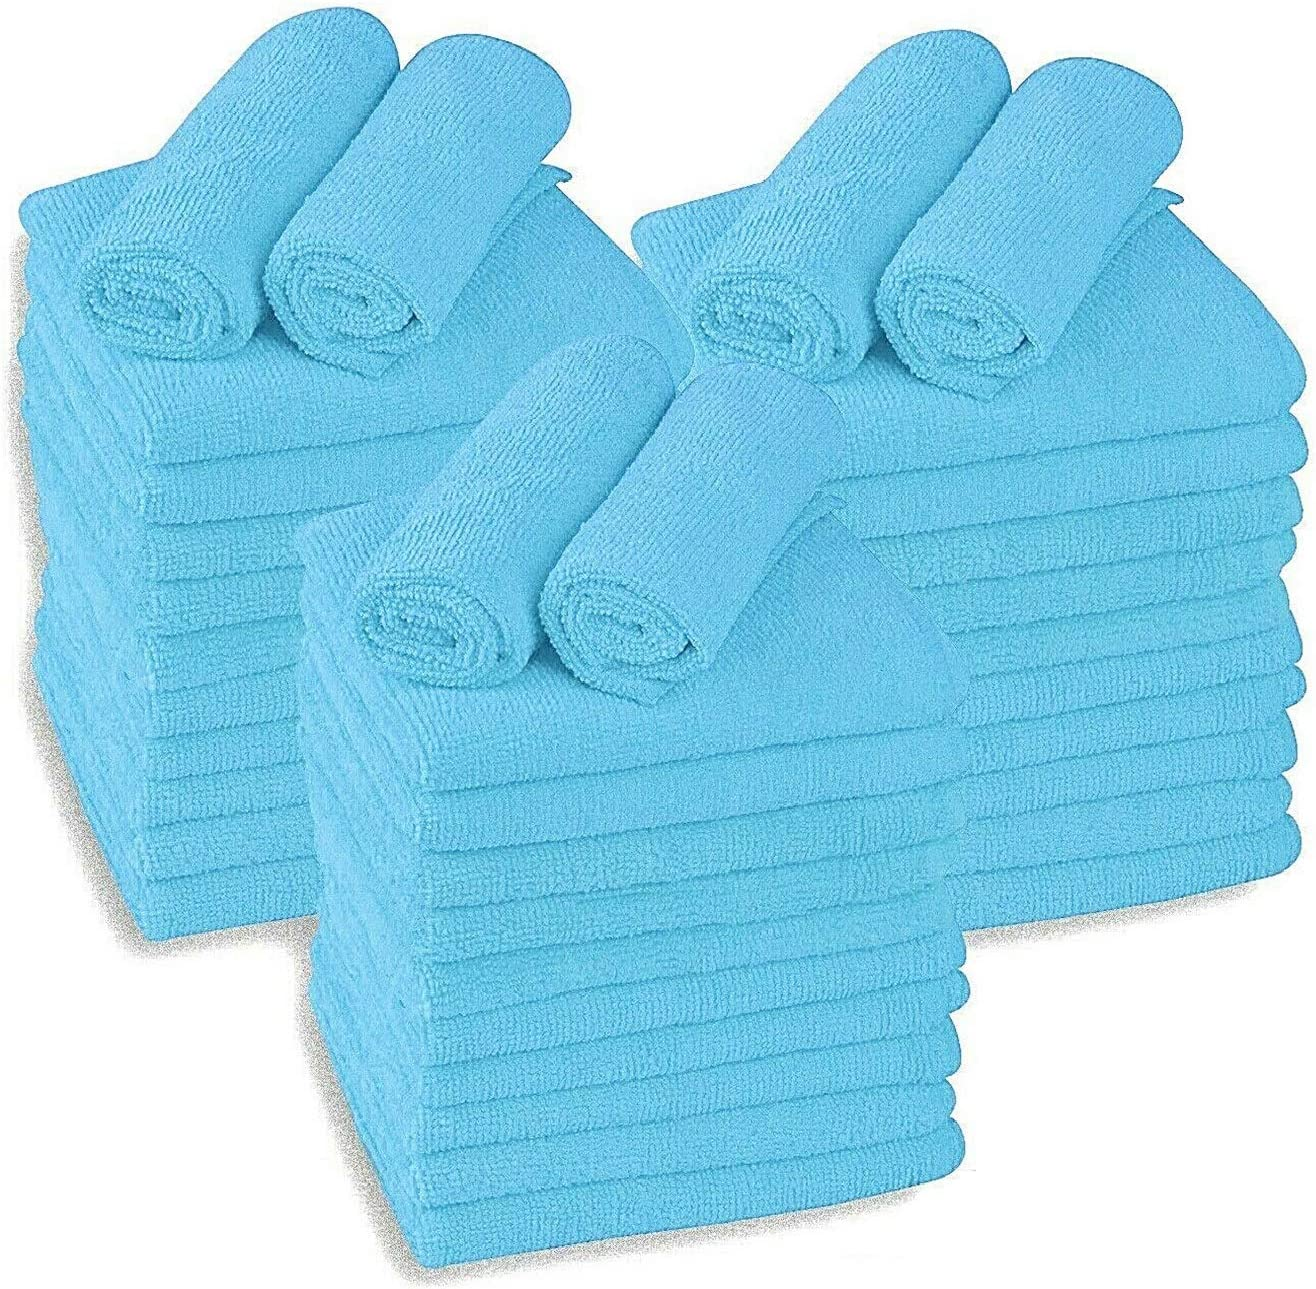 Large Microfiber Cleaning Towels 36-Pack Wash Max 41% OFF San Jose Mall Ultra Plush Soft